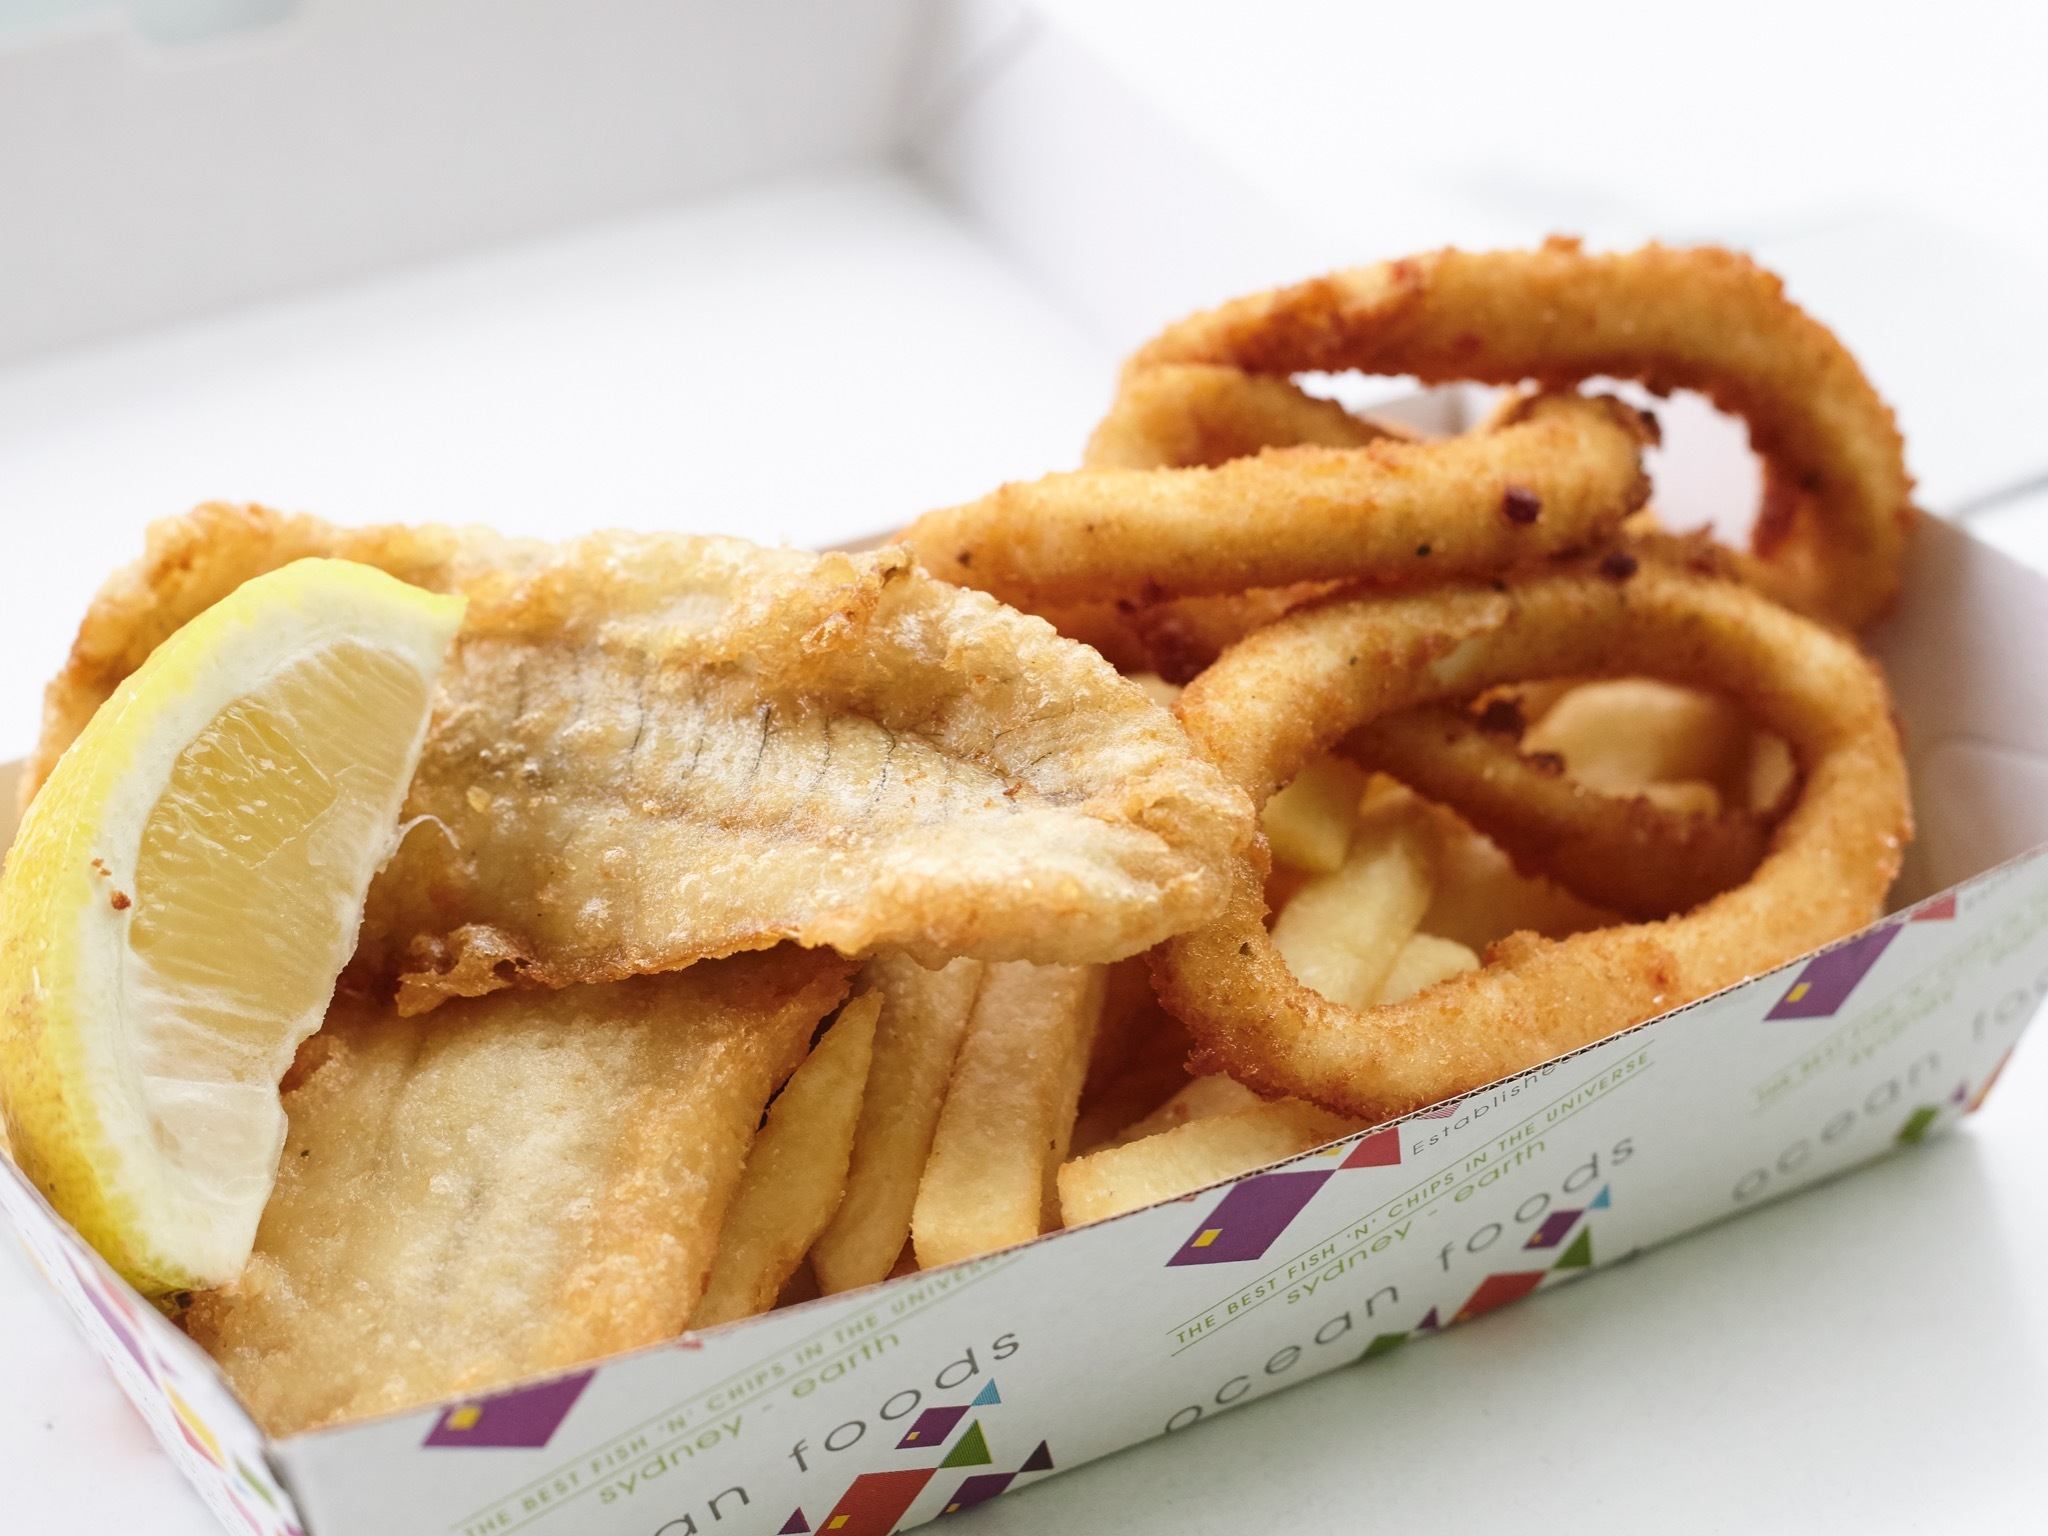 Fish and chips at Ocean Foods